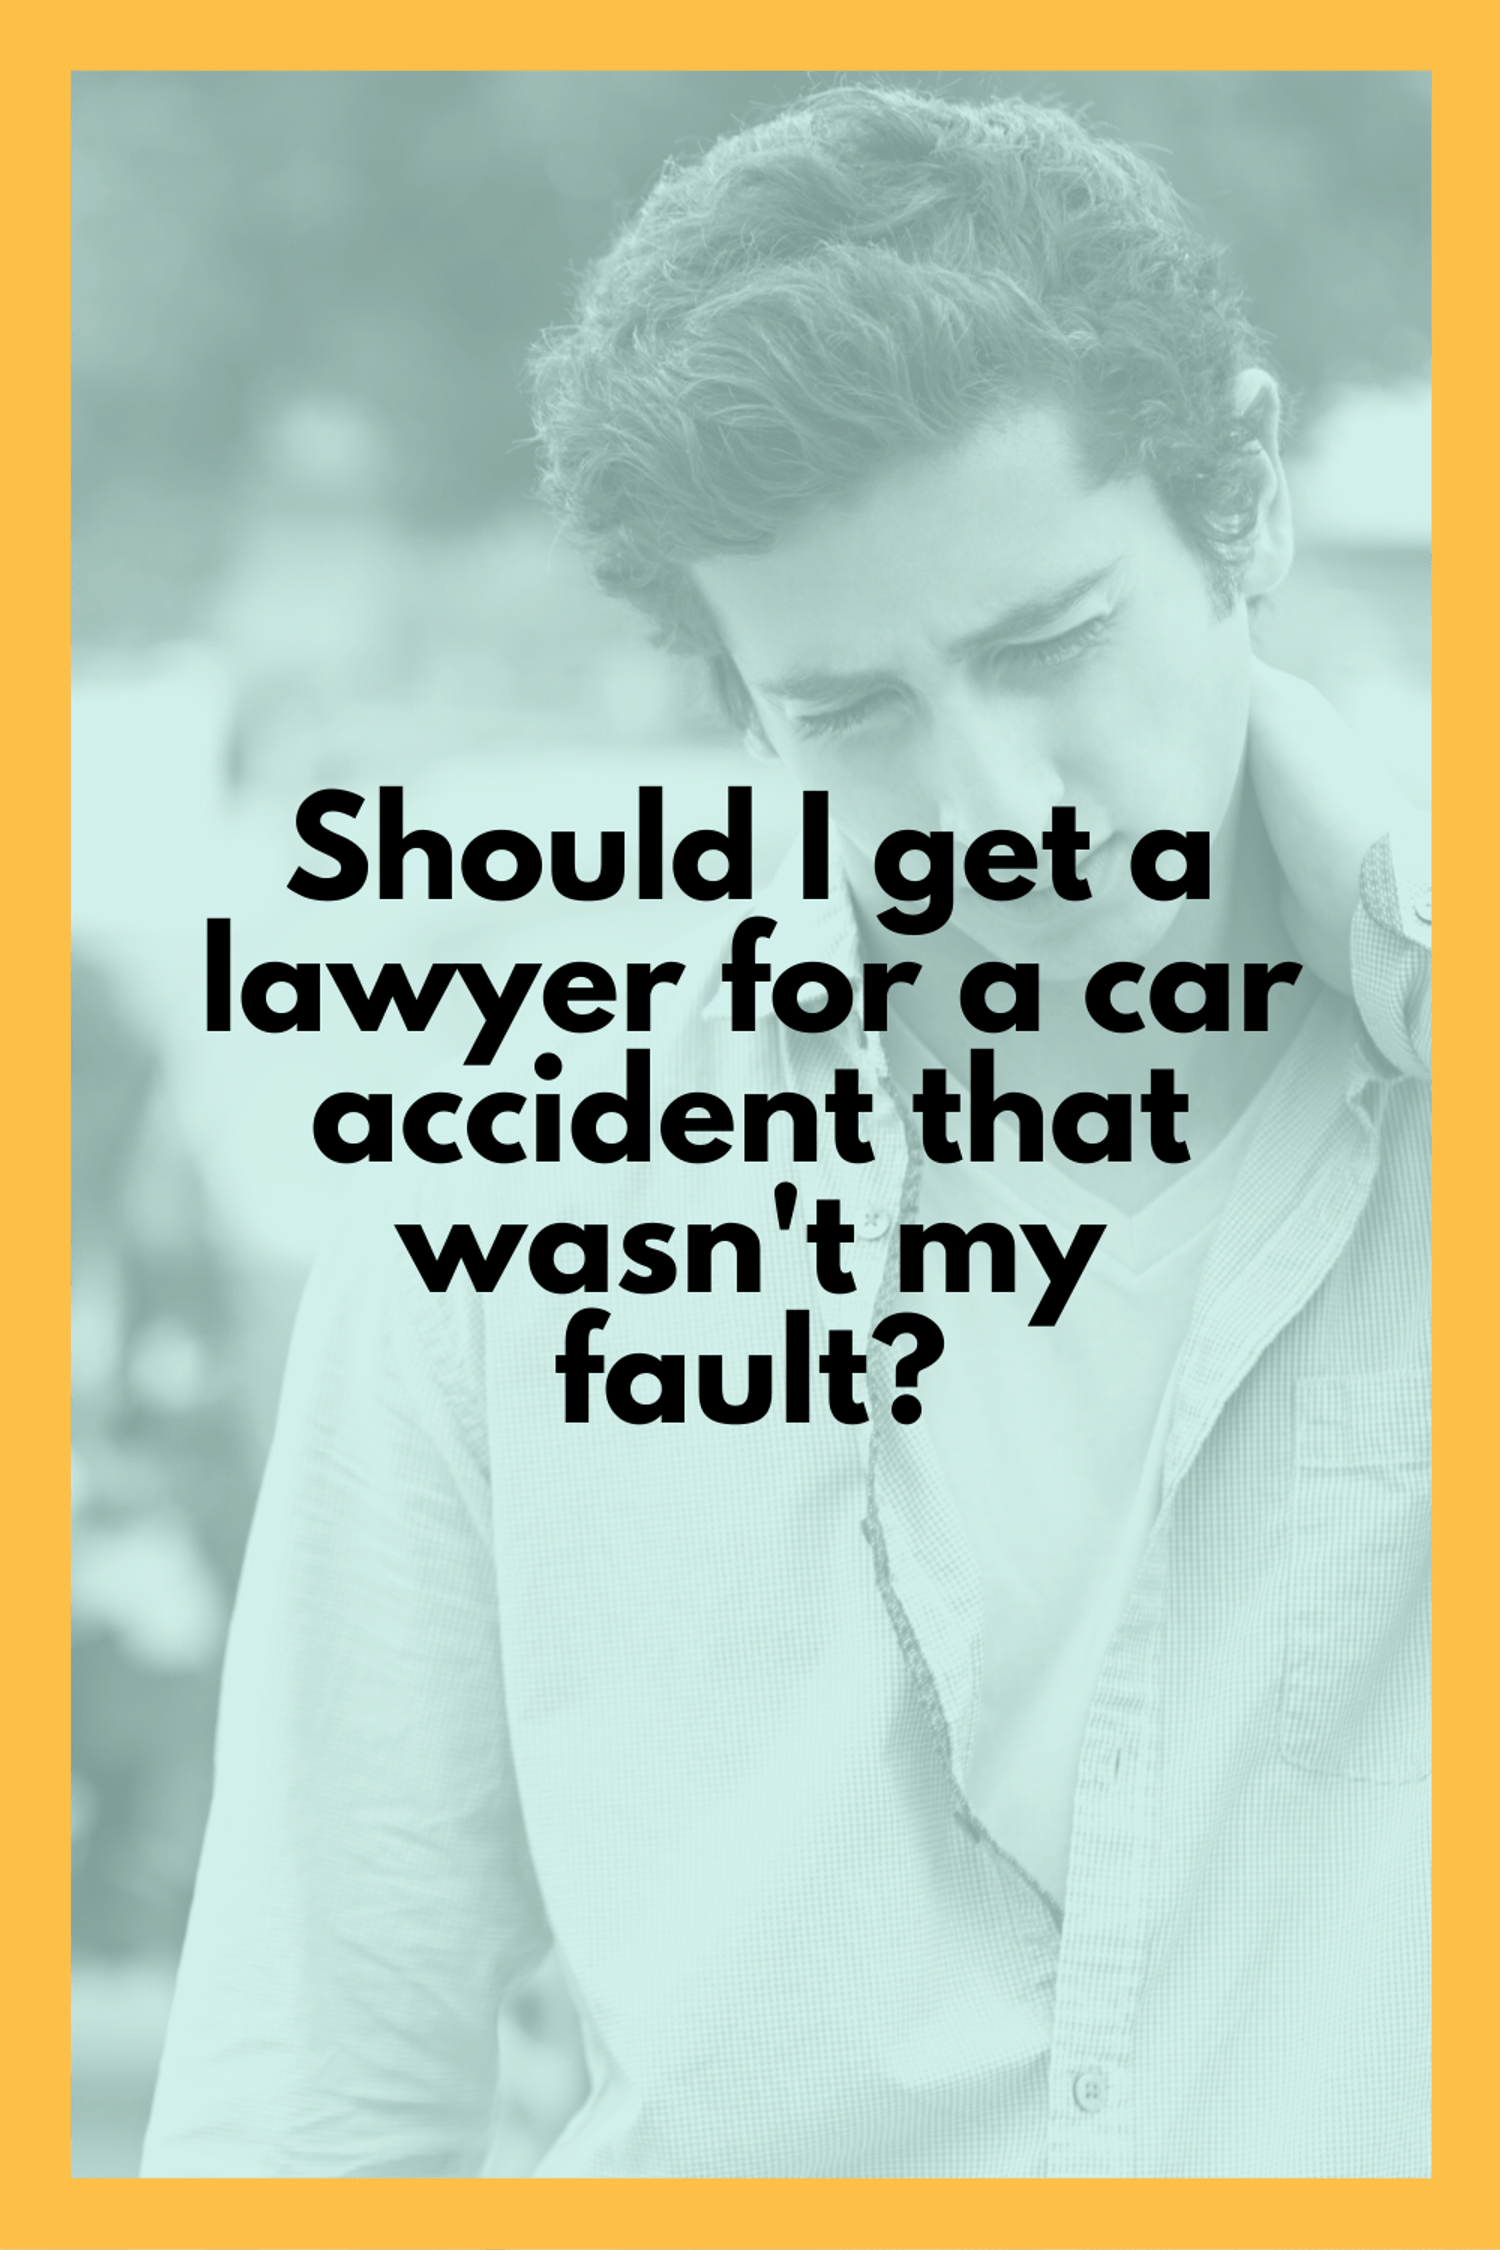 Should I Get A Lawyer For A Car Accident That Wasn\'t My Fault?